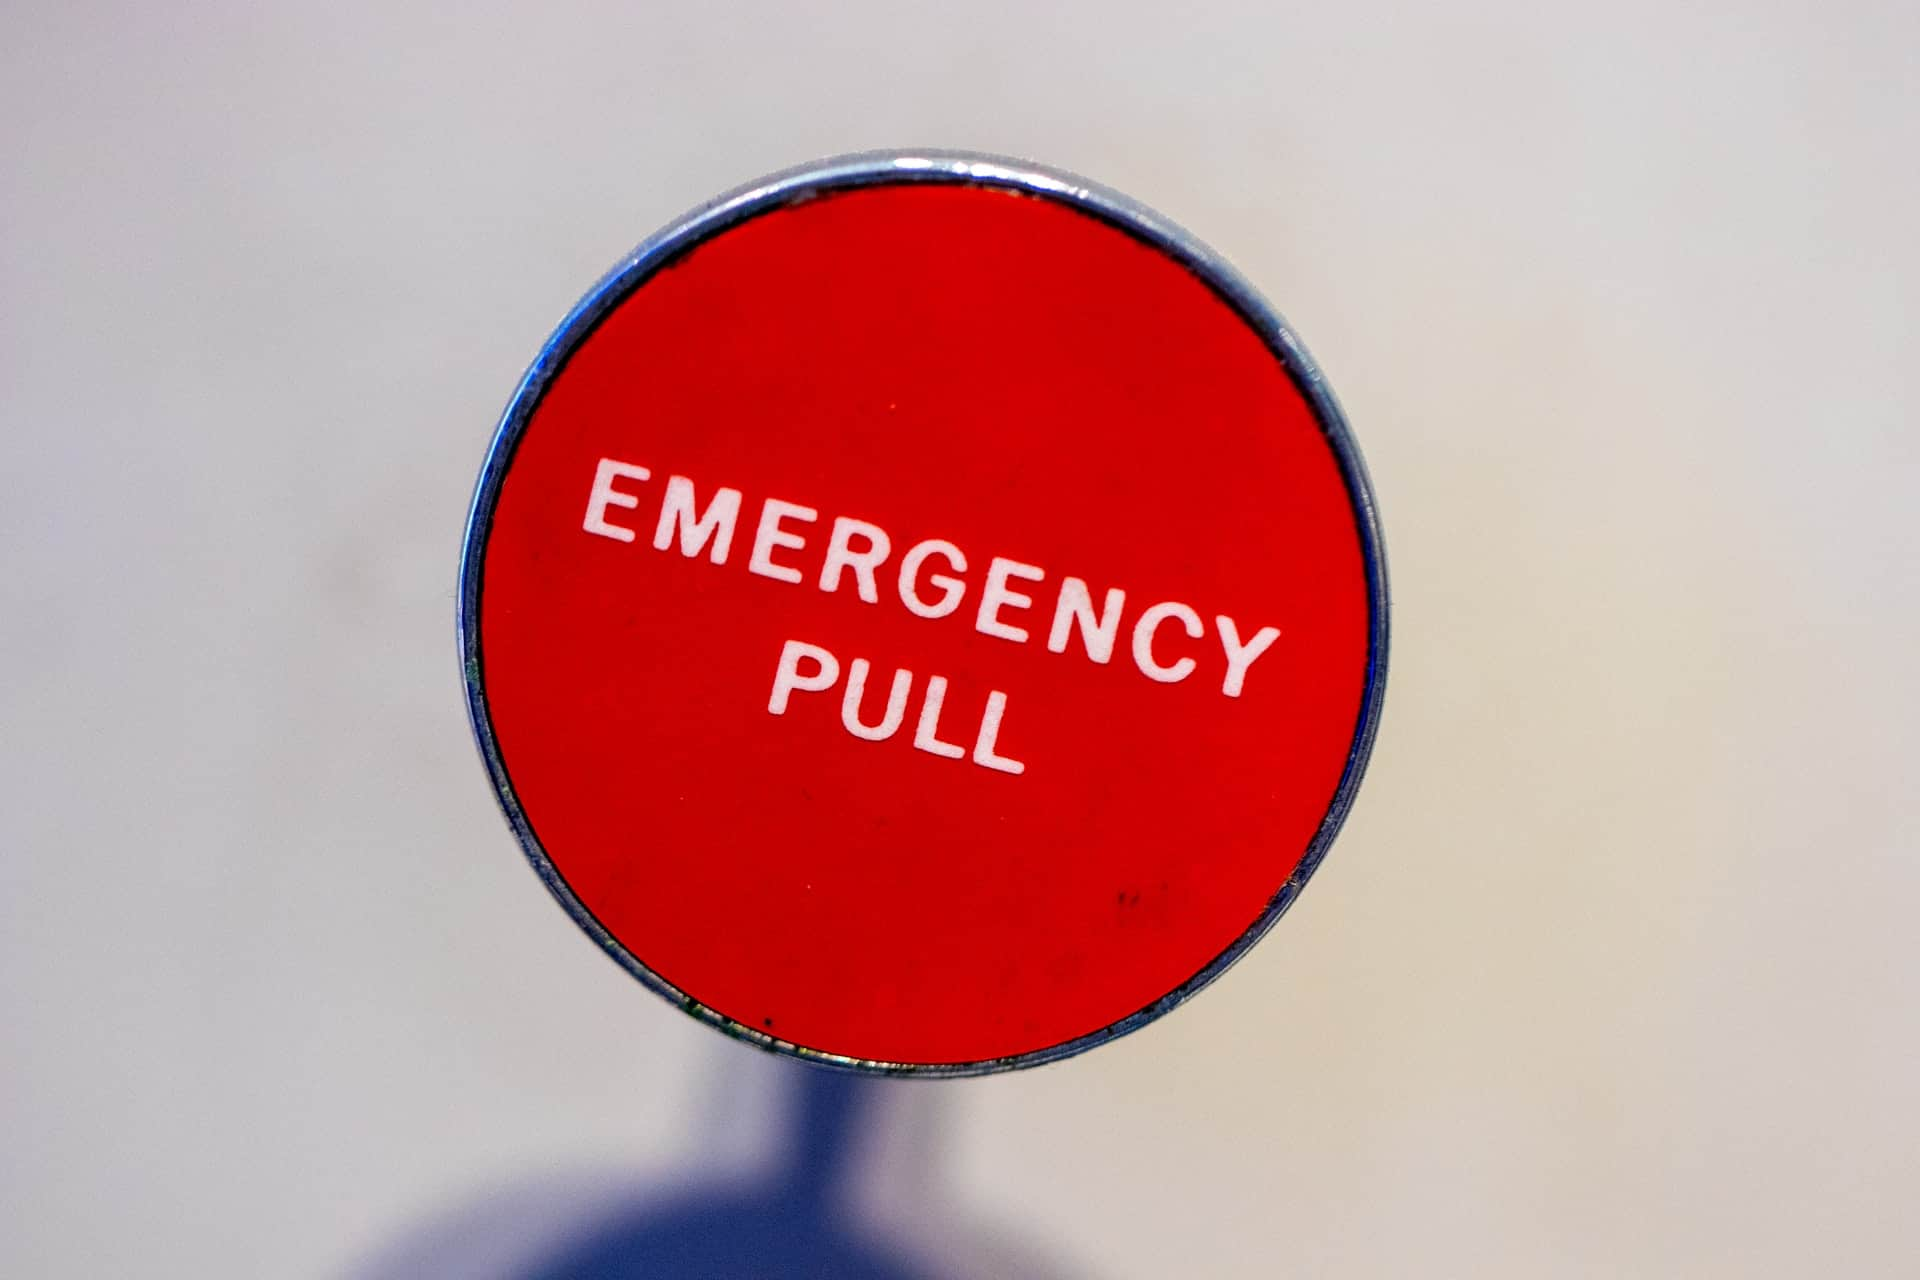 Emergency pull up close